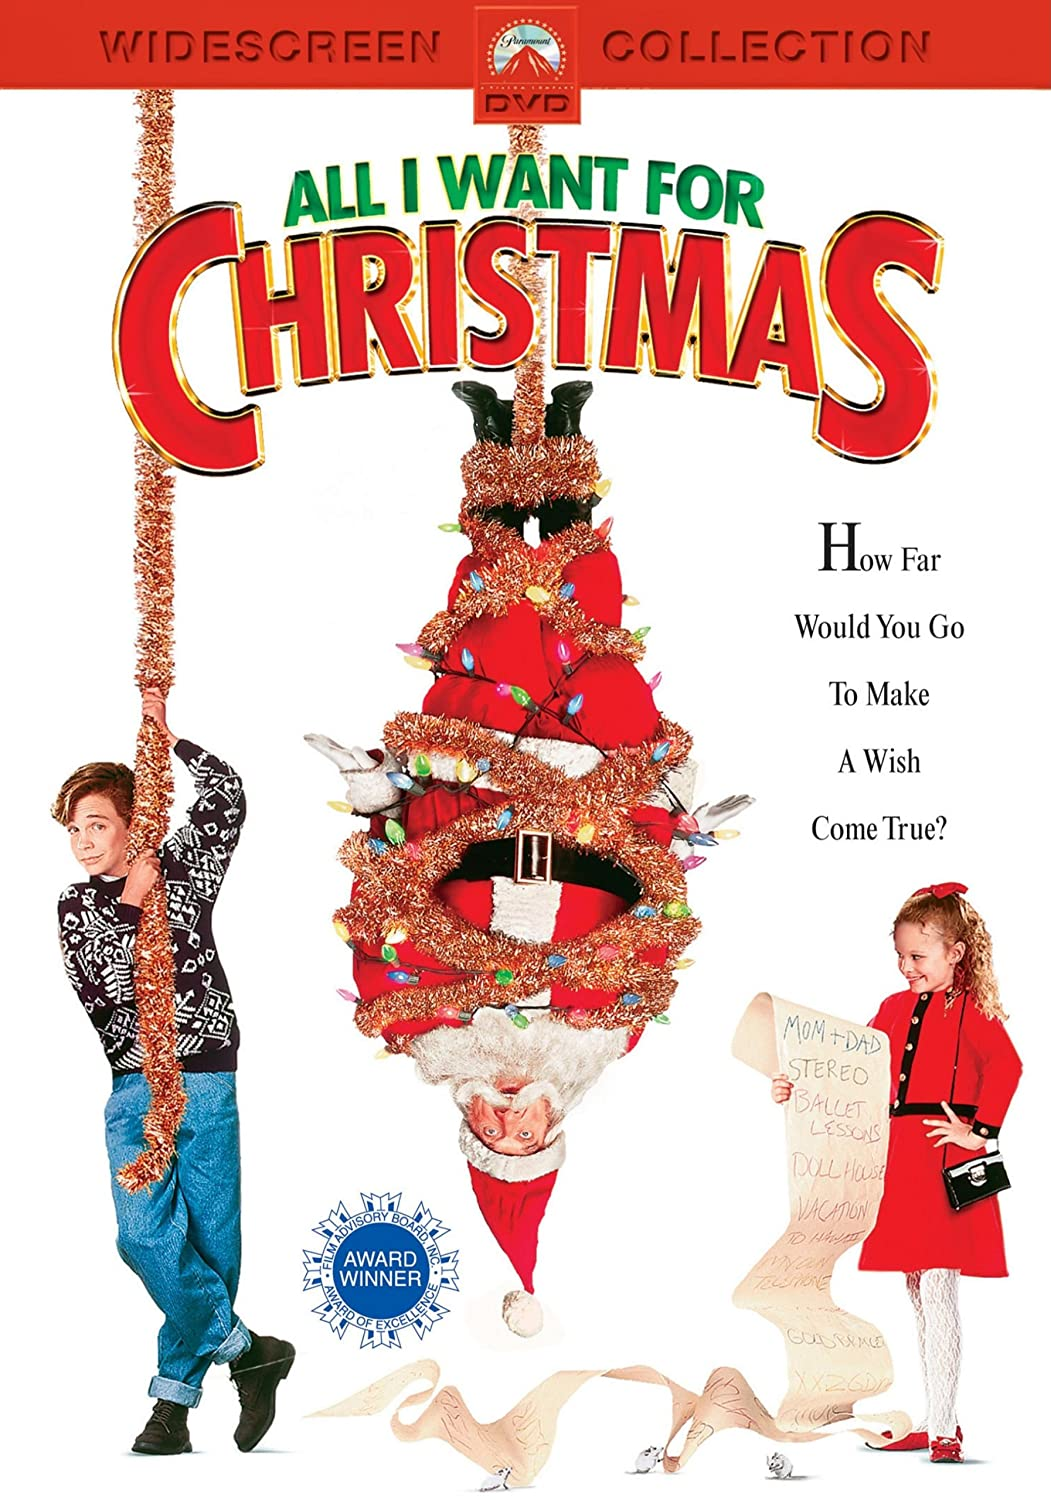 Amazon.com: All I Want For Christmas: Lauren Bacall, Thora Birch ...